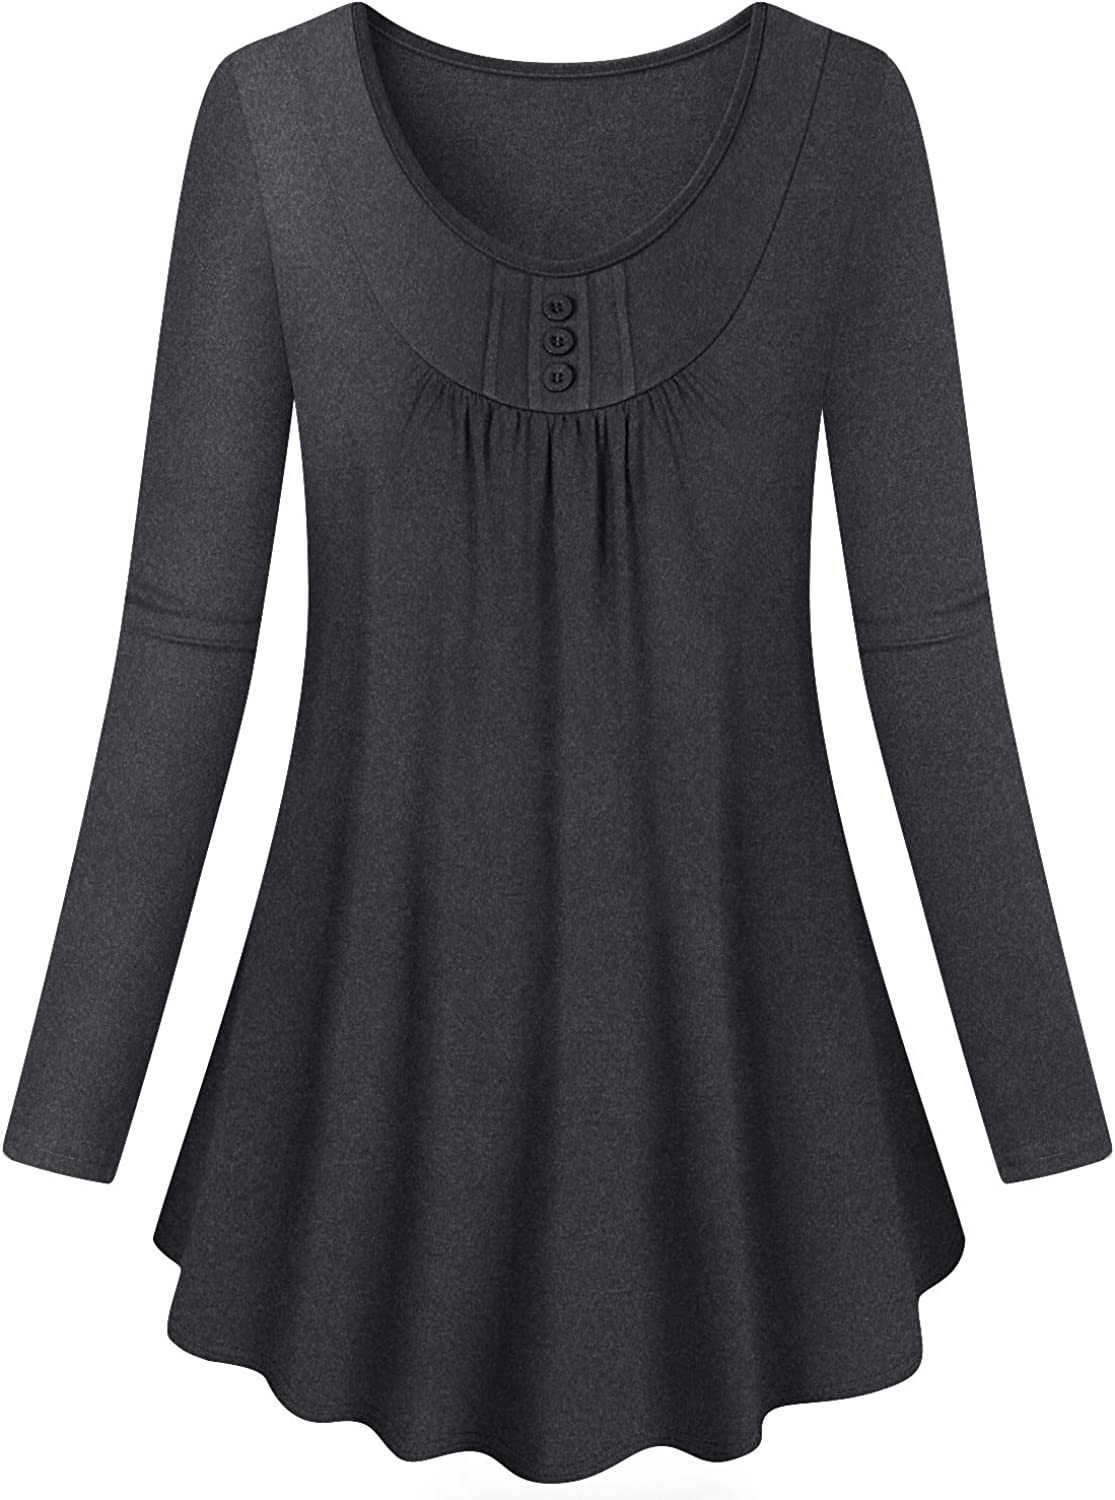 Luranee Women's Long Sleeve Button Decor Tunic Tops Loose Fitting Blouses